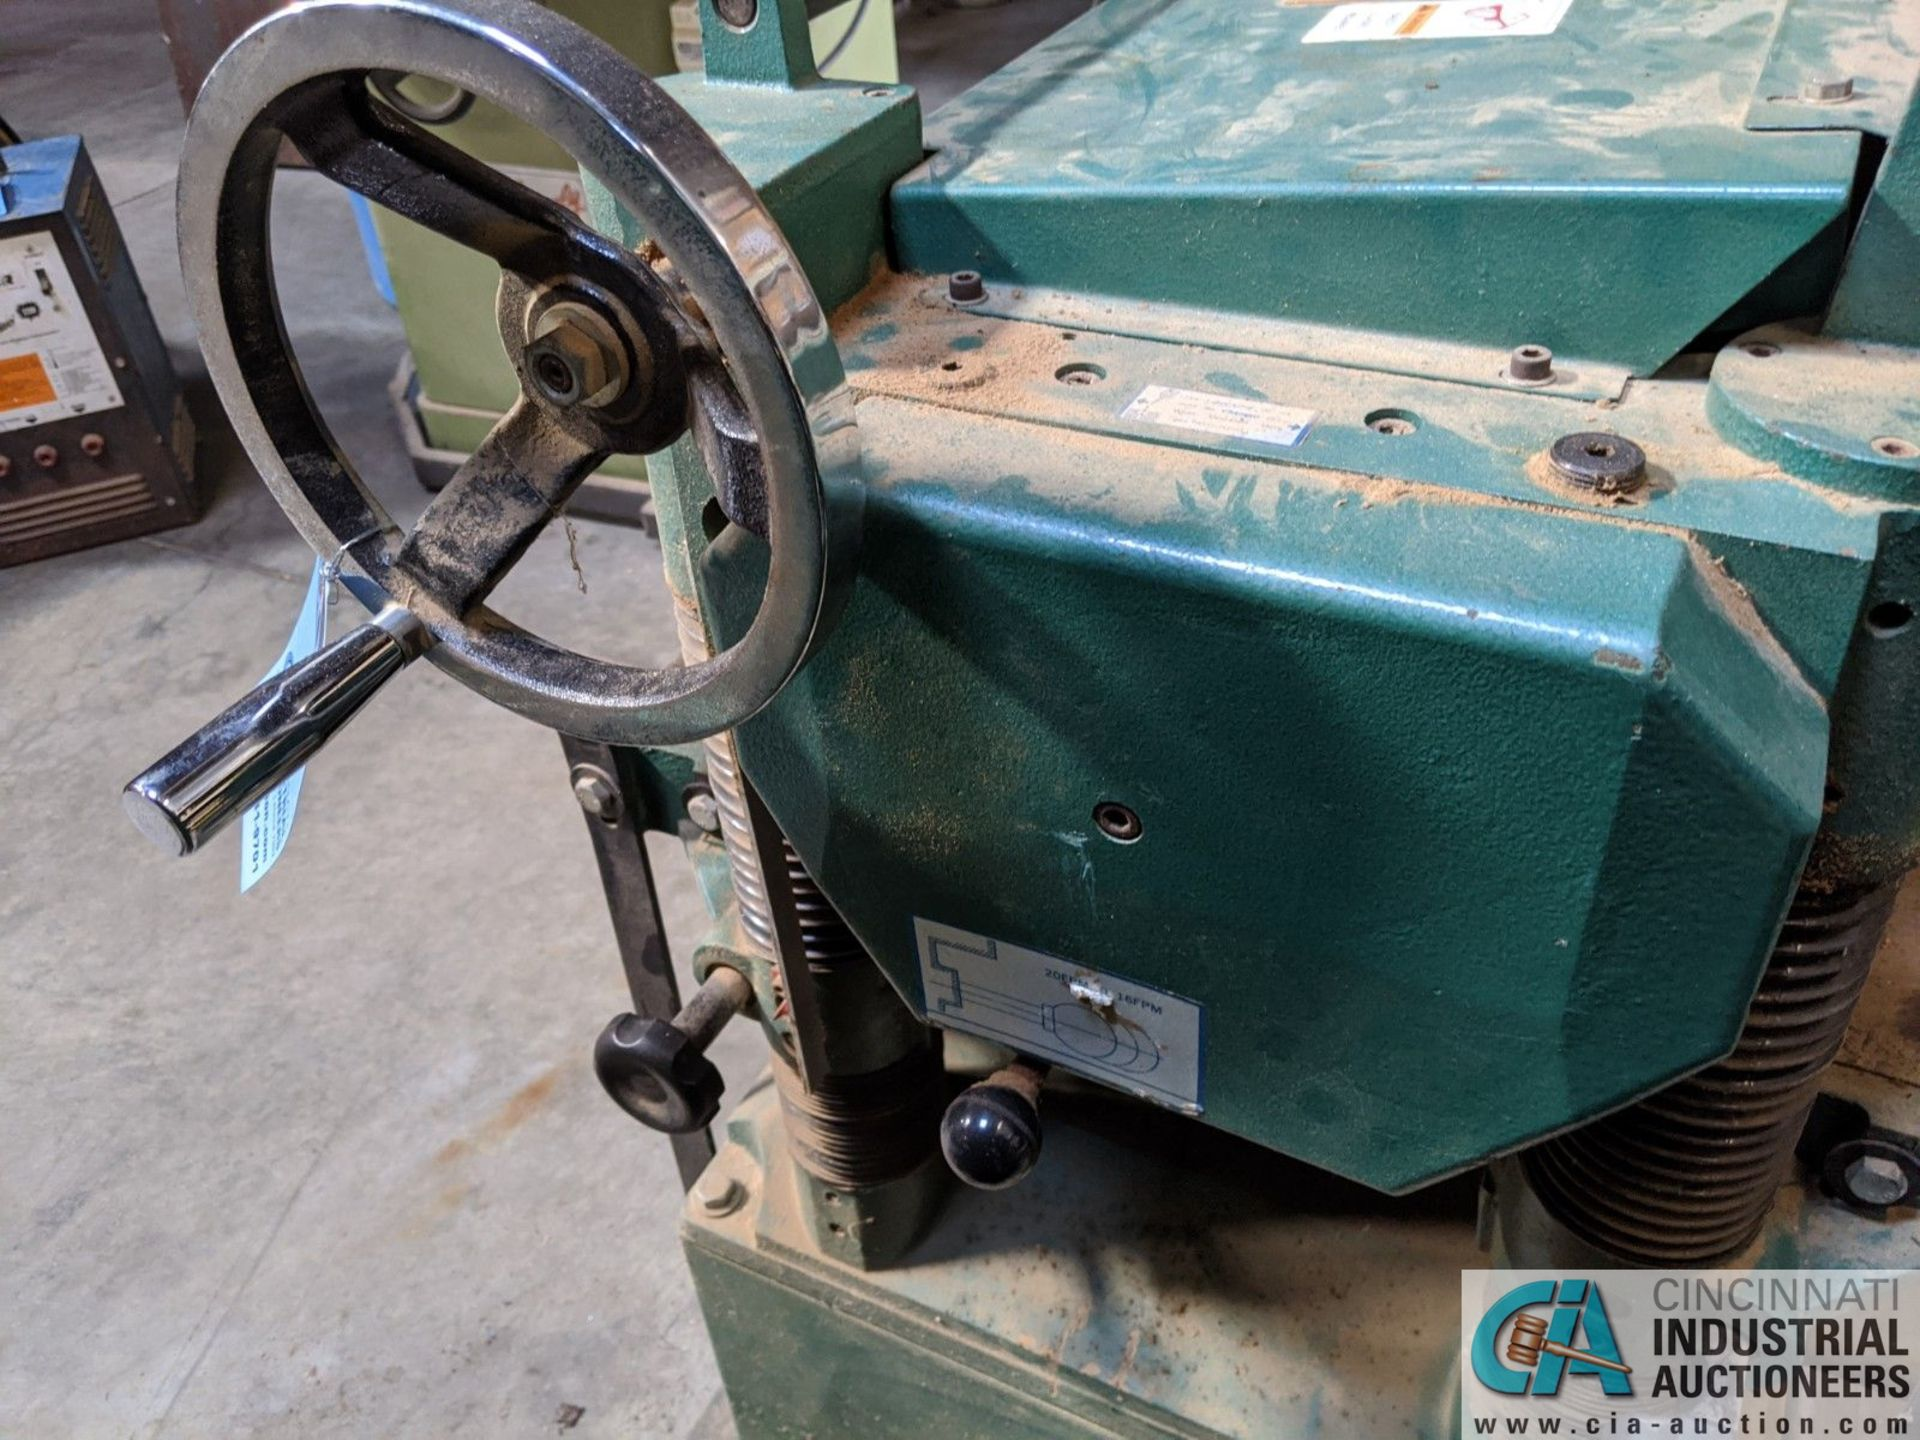 """20"""" GRIZZLY MODEL G1033 PLANER; S/N 636874, 16 - 20 FPM (8635 East Ave., Mentor, OH 44060 - John - Image 5 of 6"""